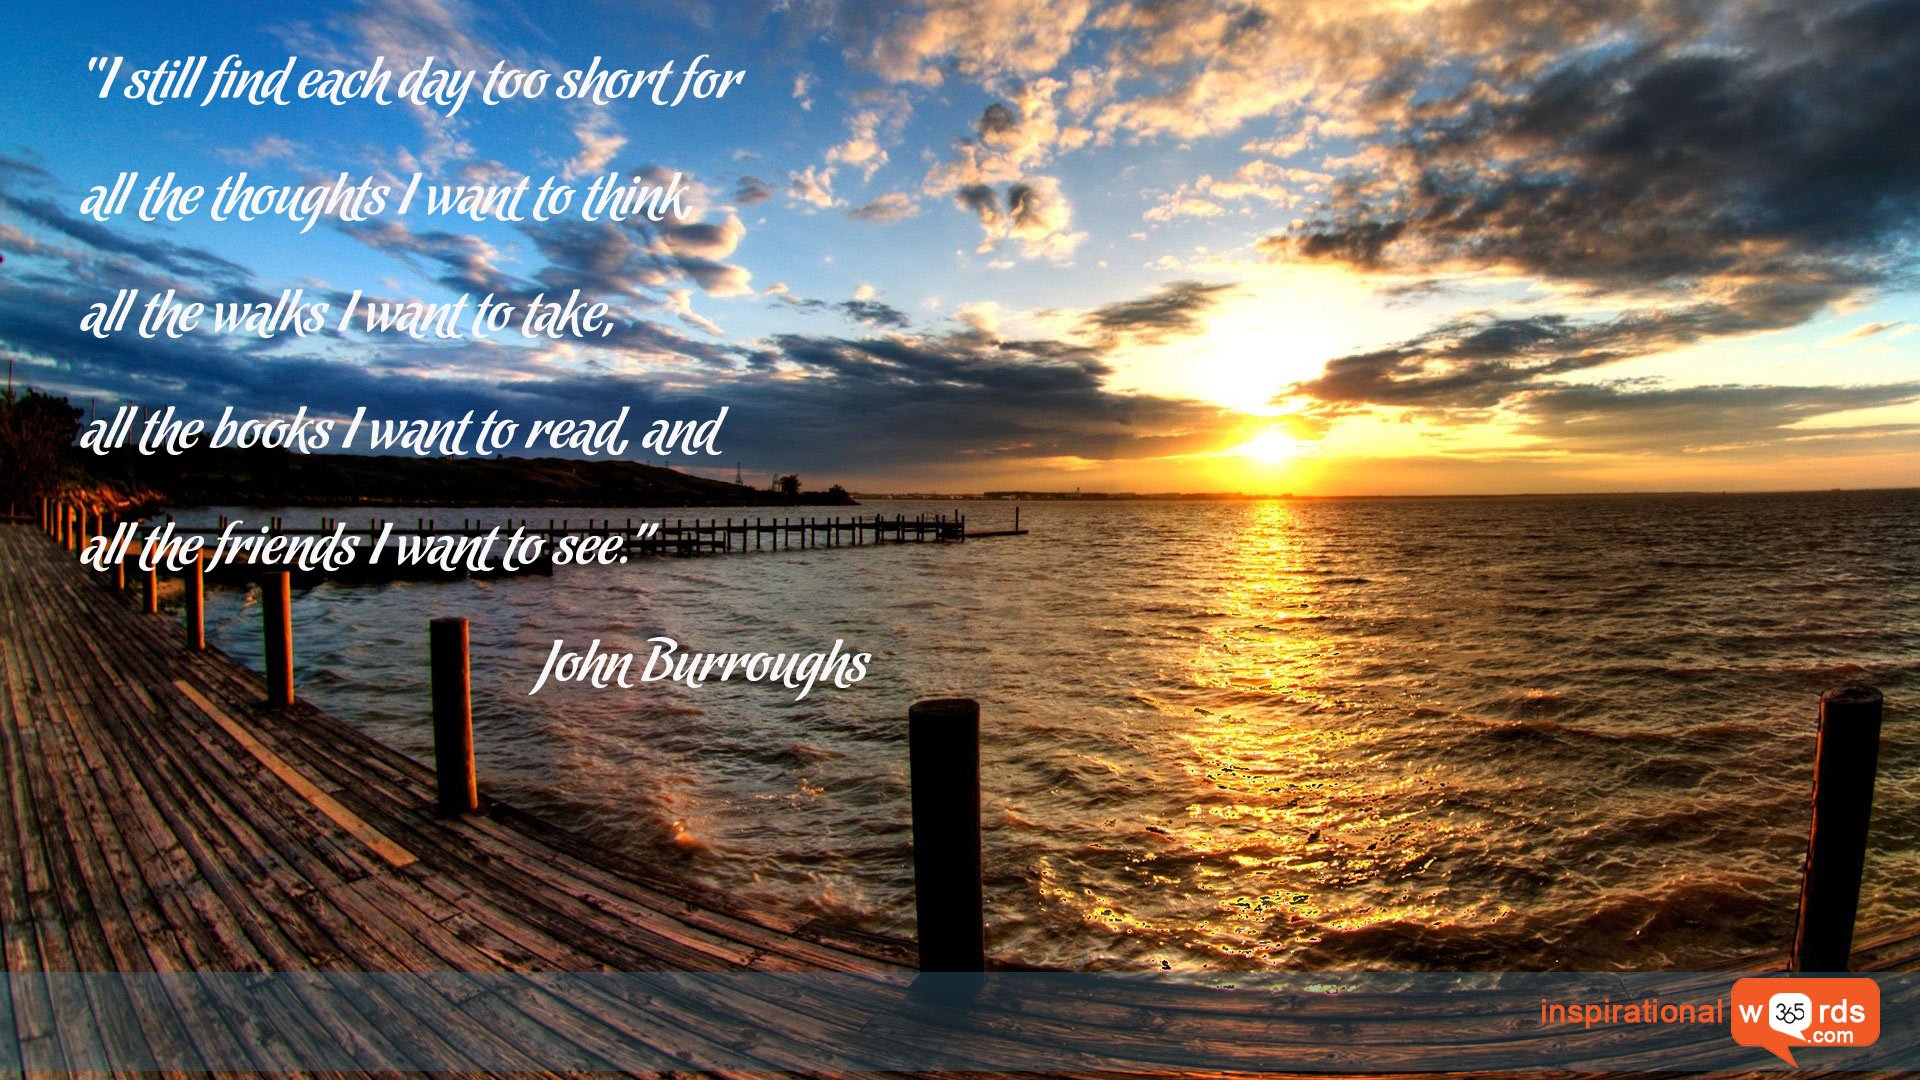 Inspirational Wallpaper Quote by John Burroughs